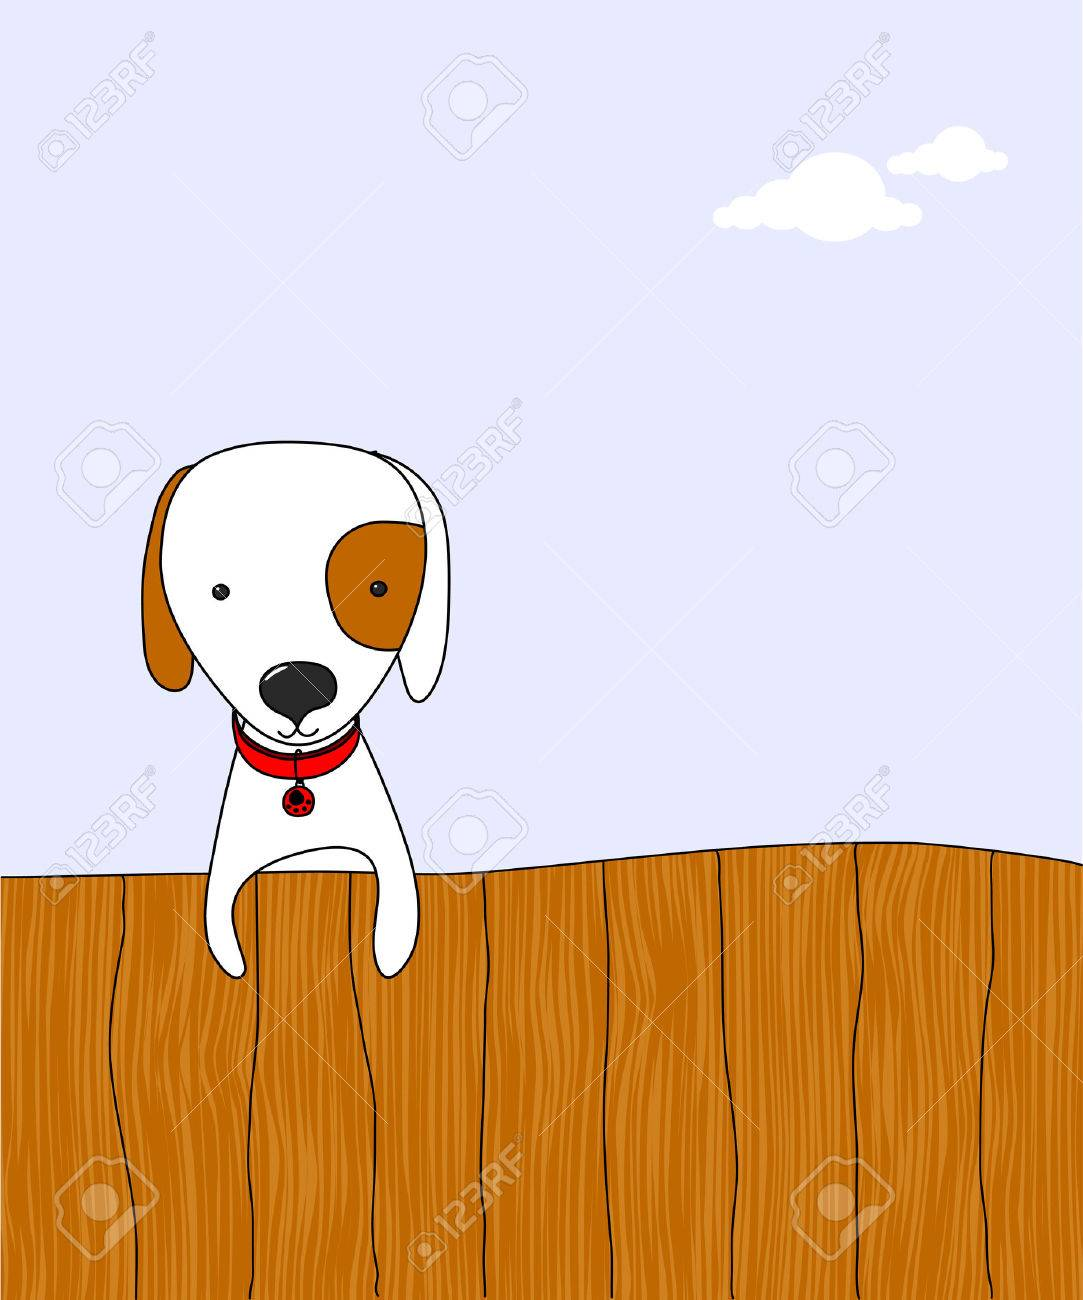 cartoon dog on a fence Stock Vector - 8432798